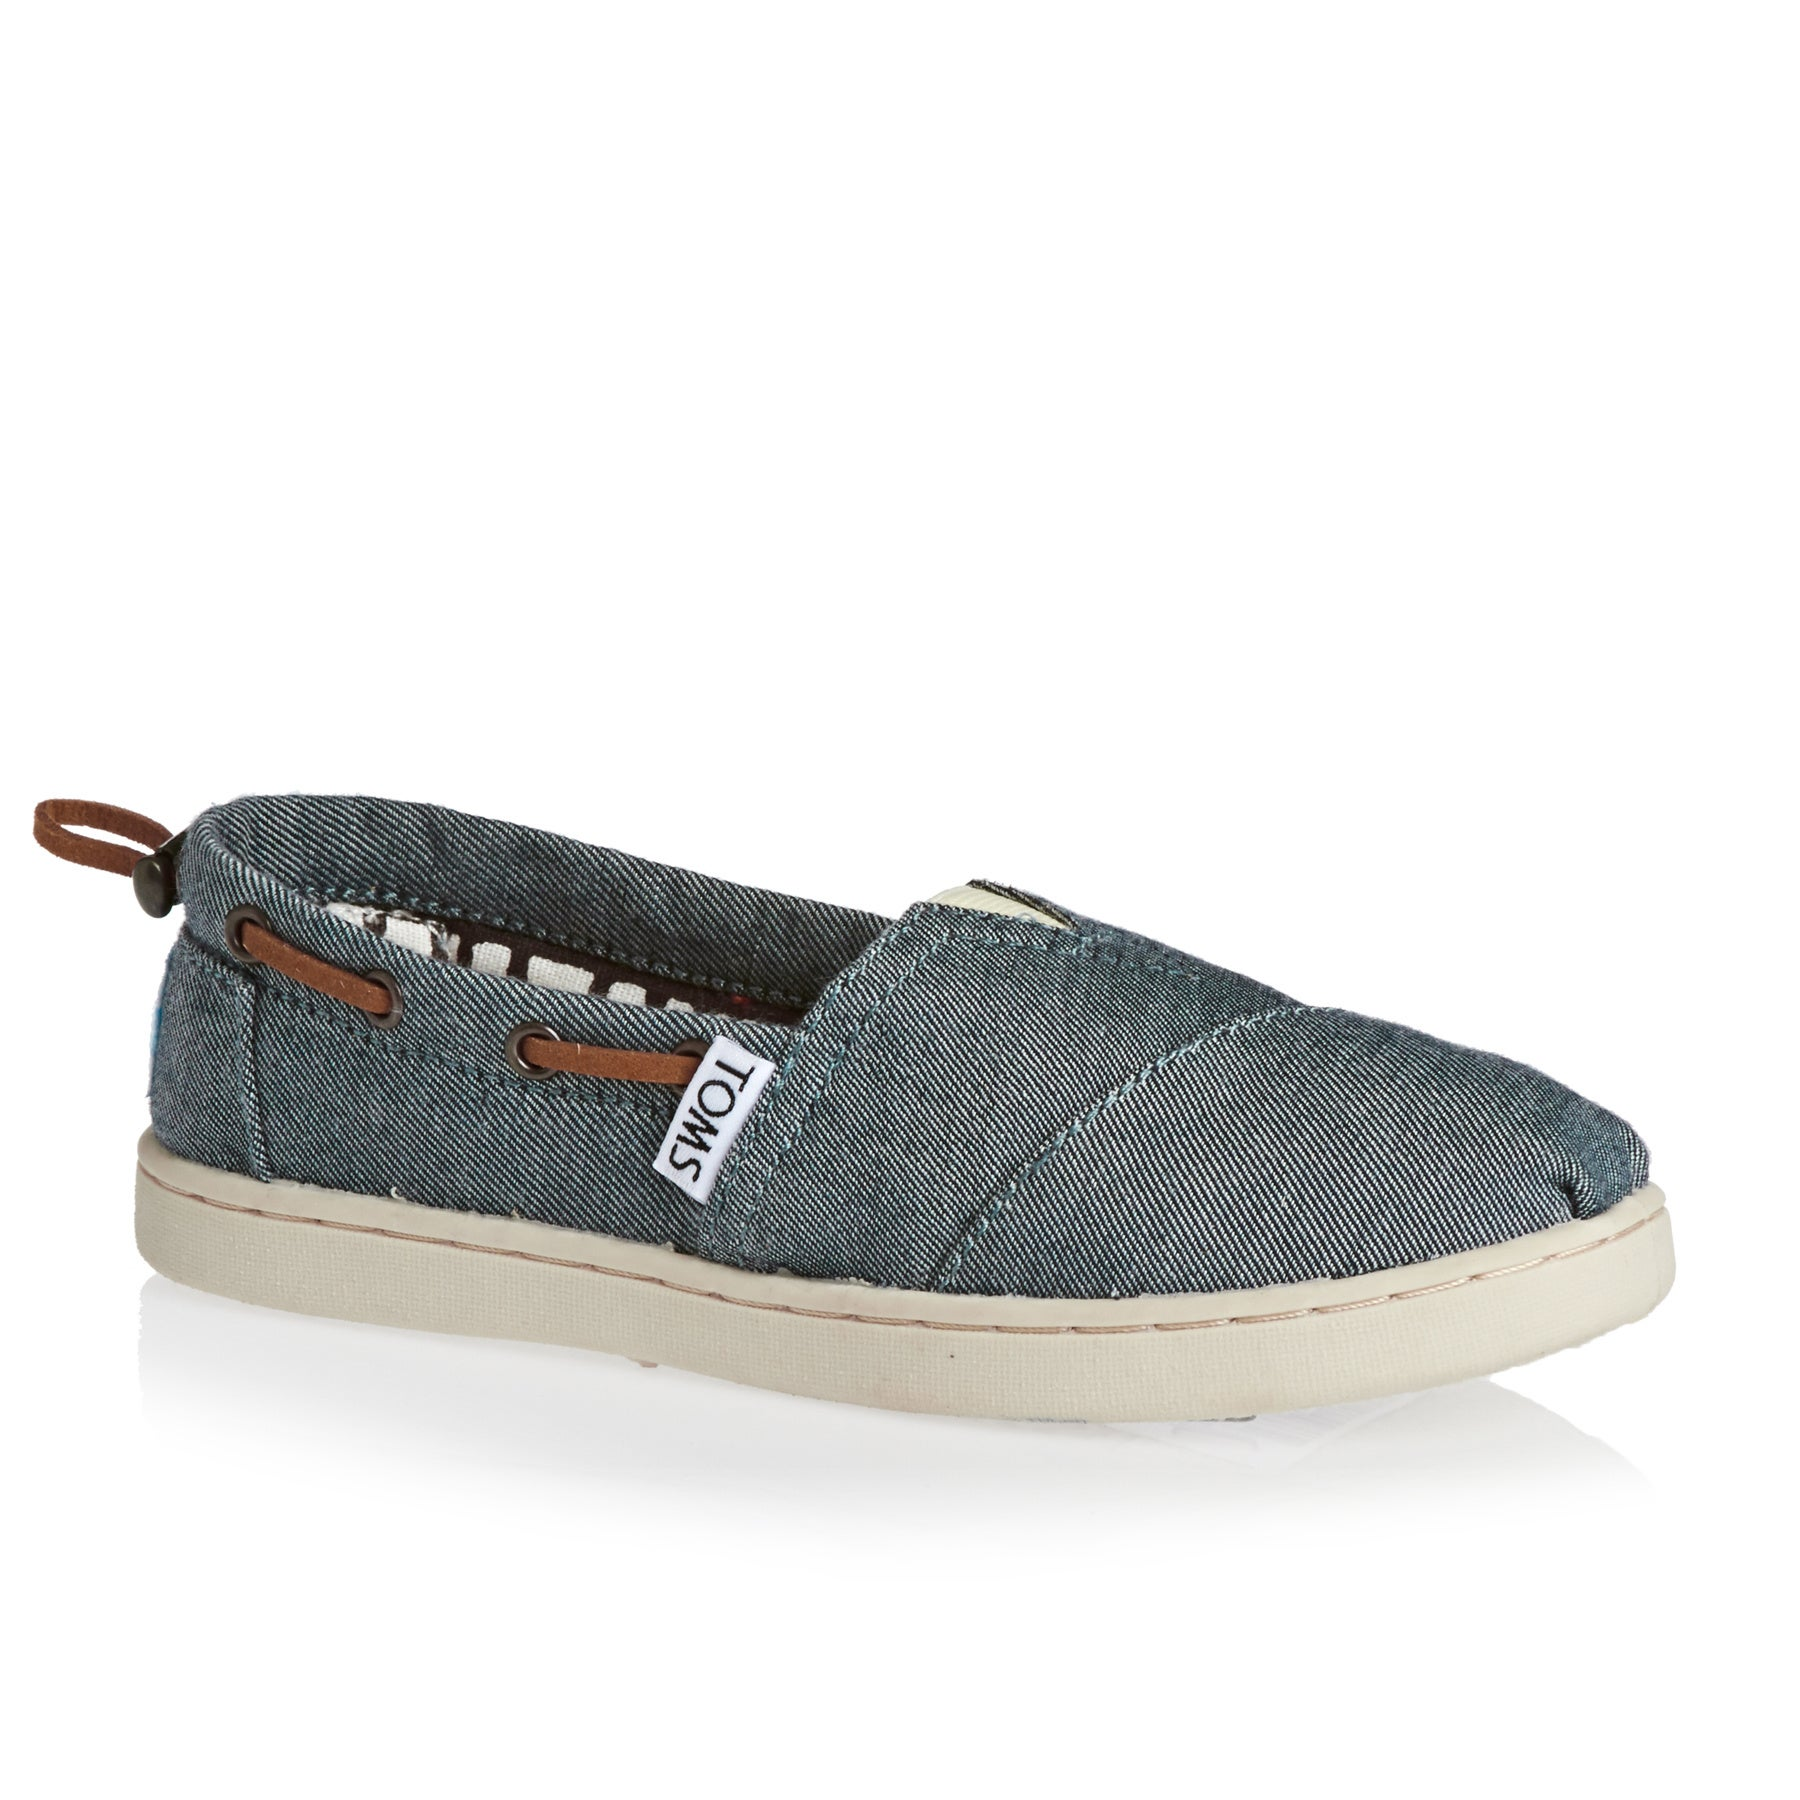 Toms Bimini Kids Dress Shoes - Chambray